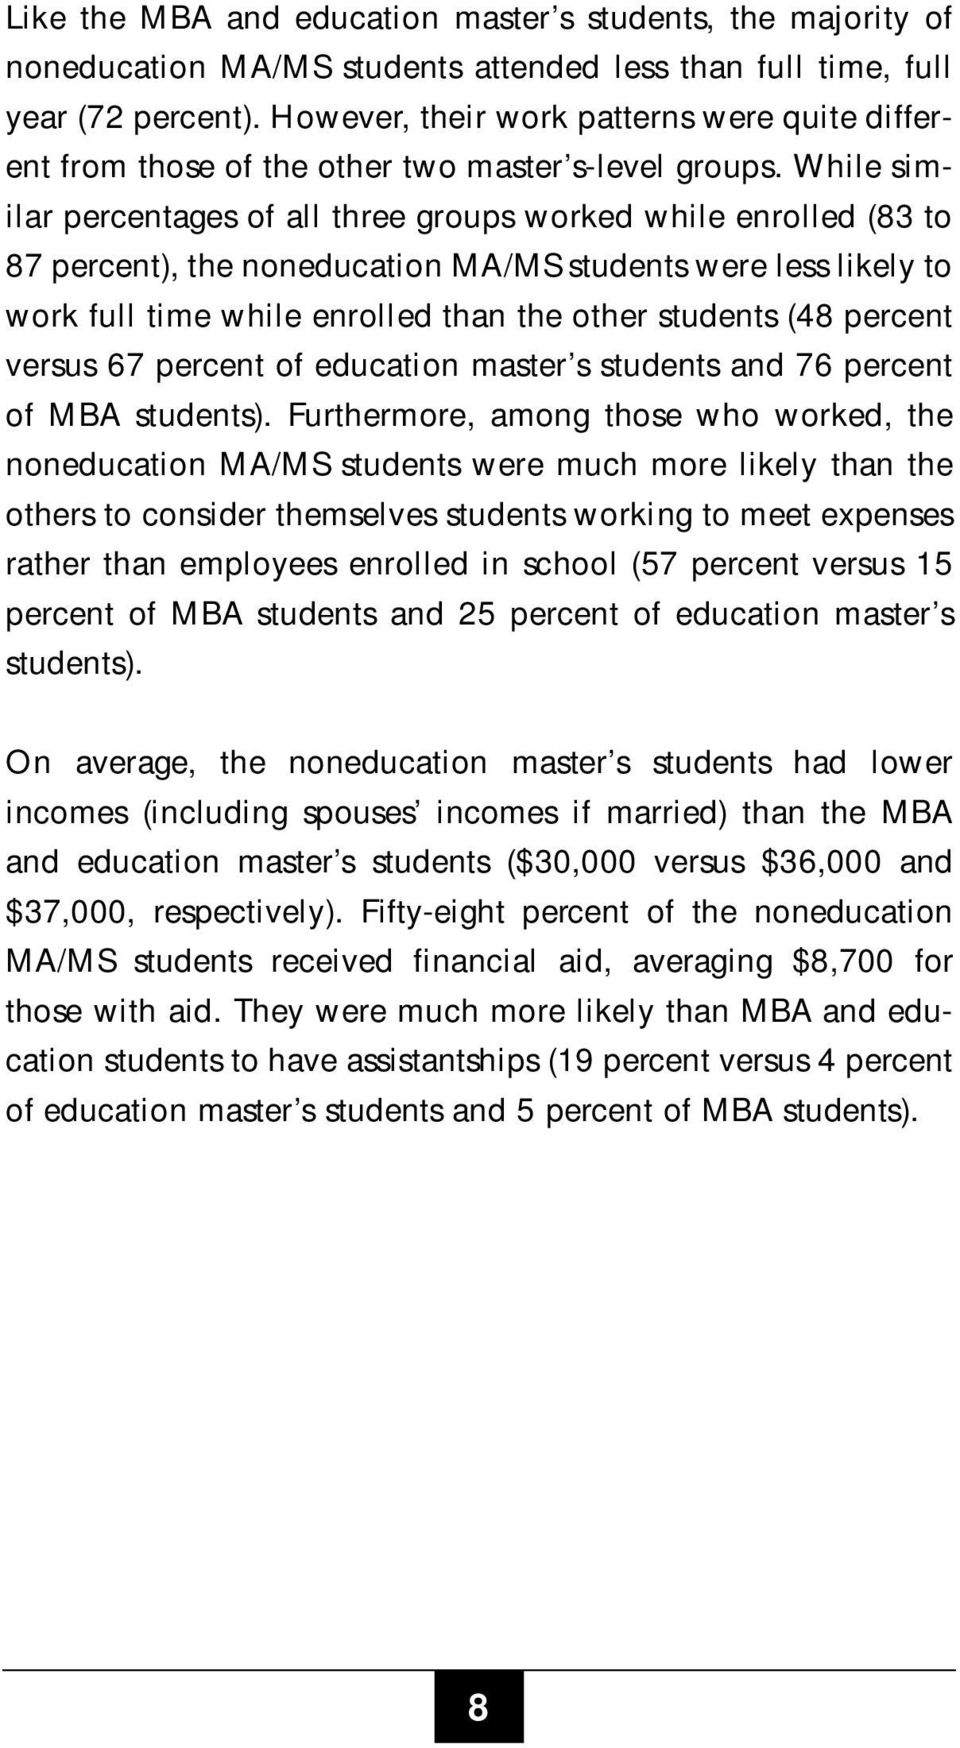 While similar percentages of all three groups worked while enrolled (83 to 87 percent), the noneducation MA/MS students were less likely to work full time while enrolled than the other students (48